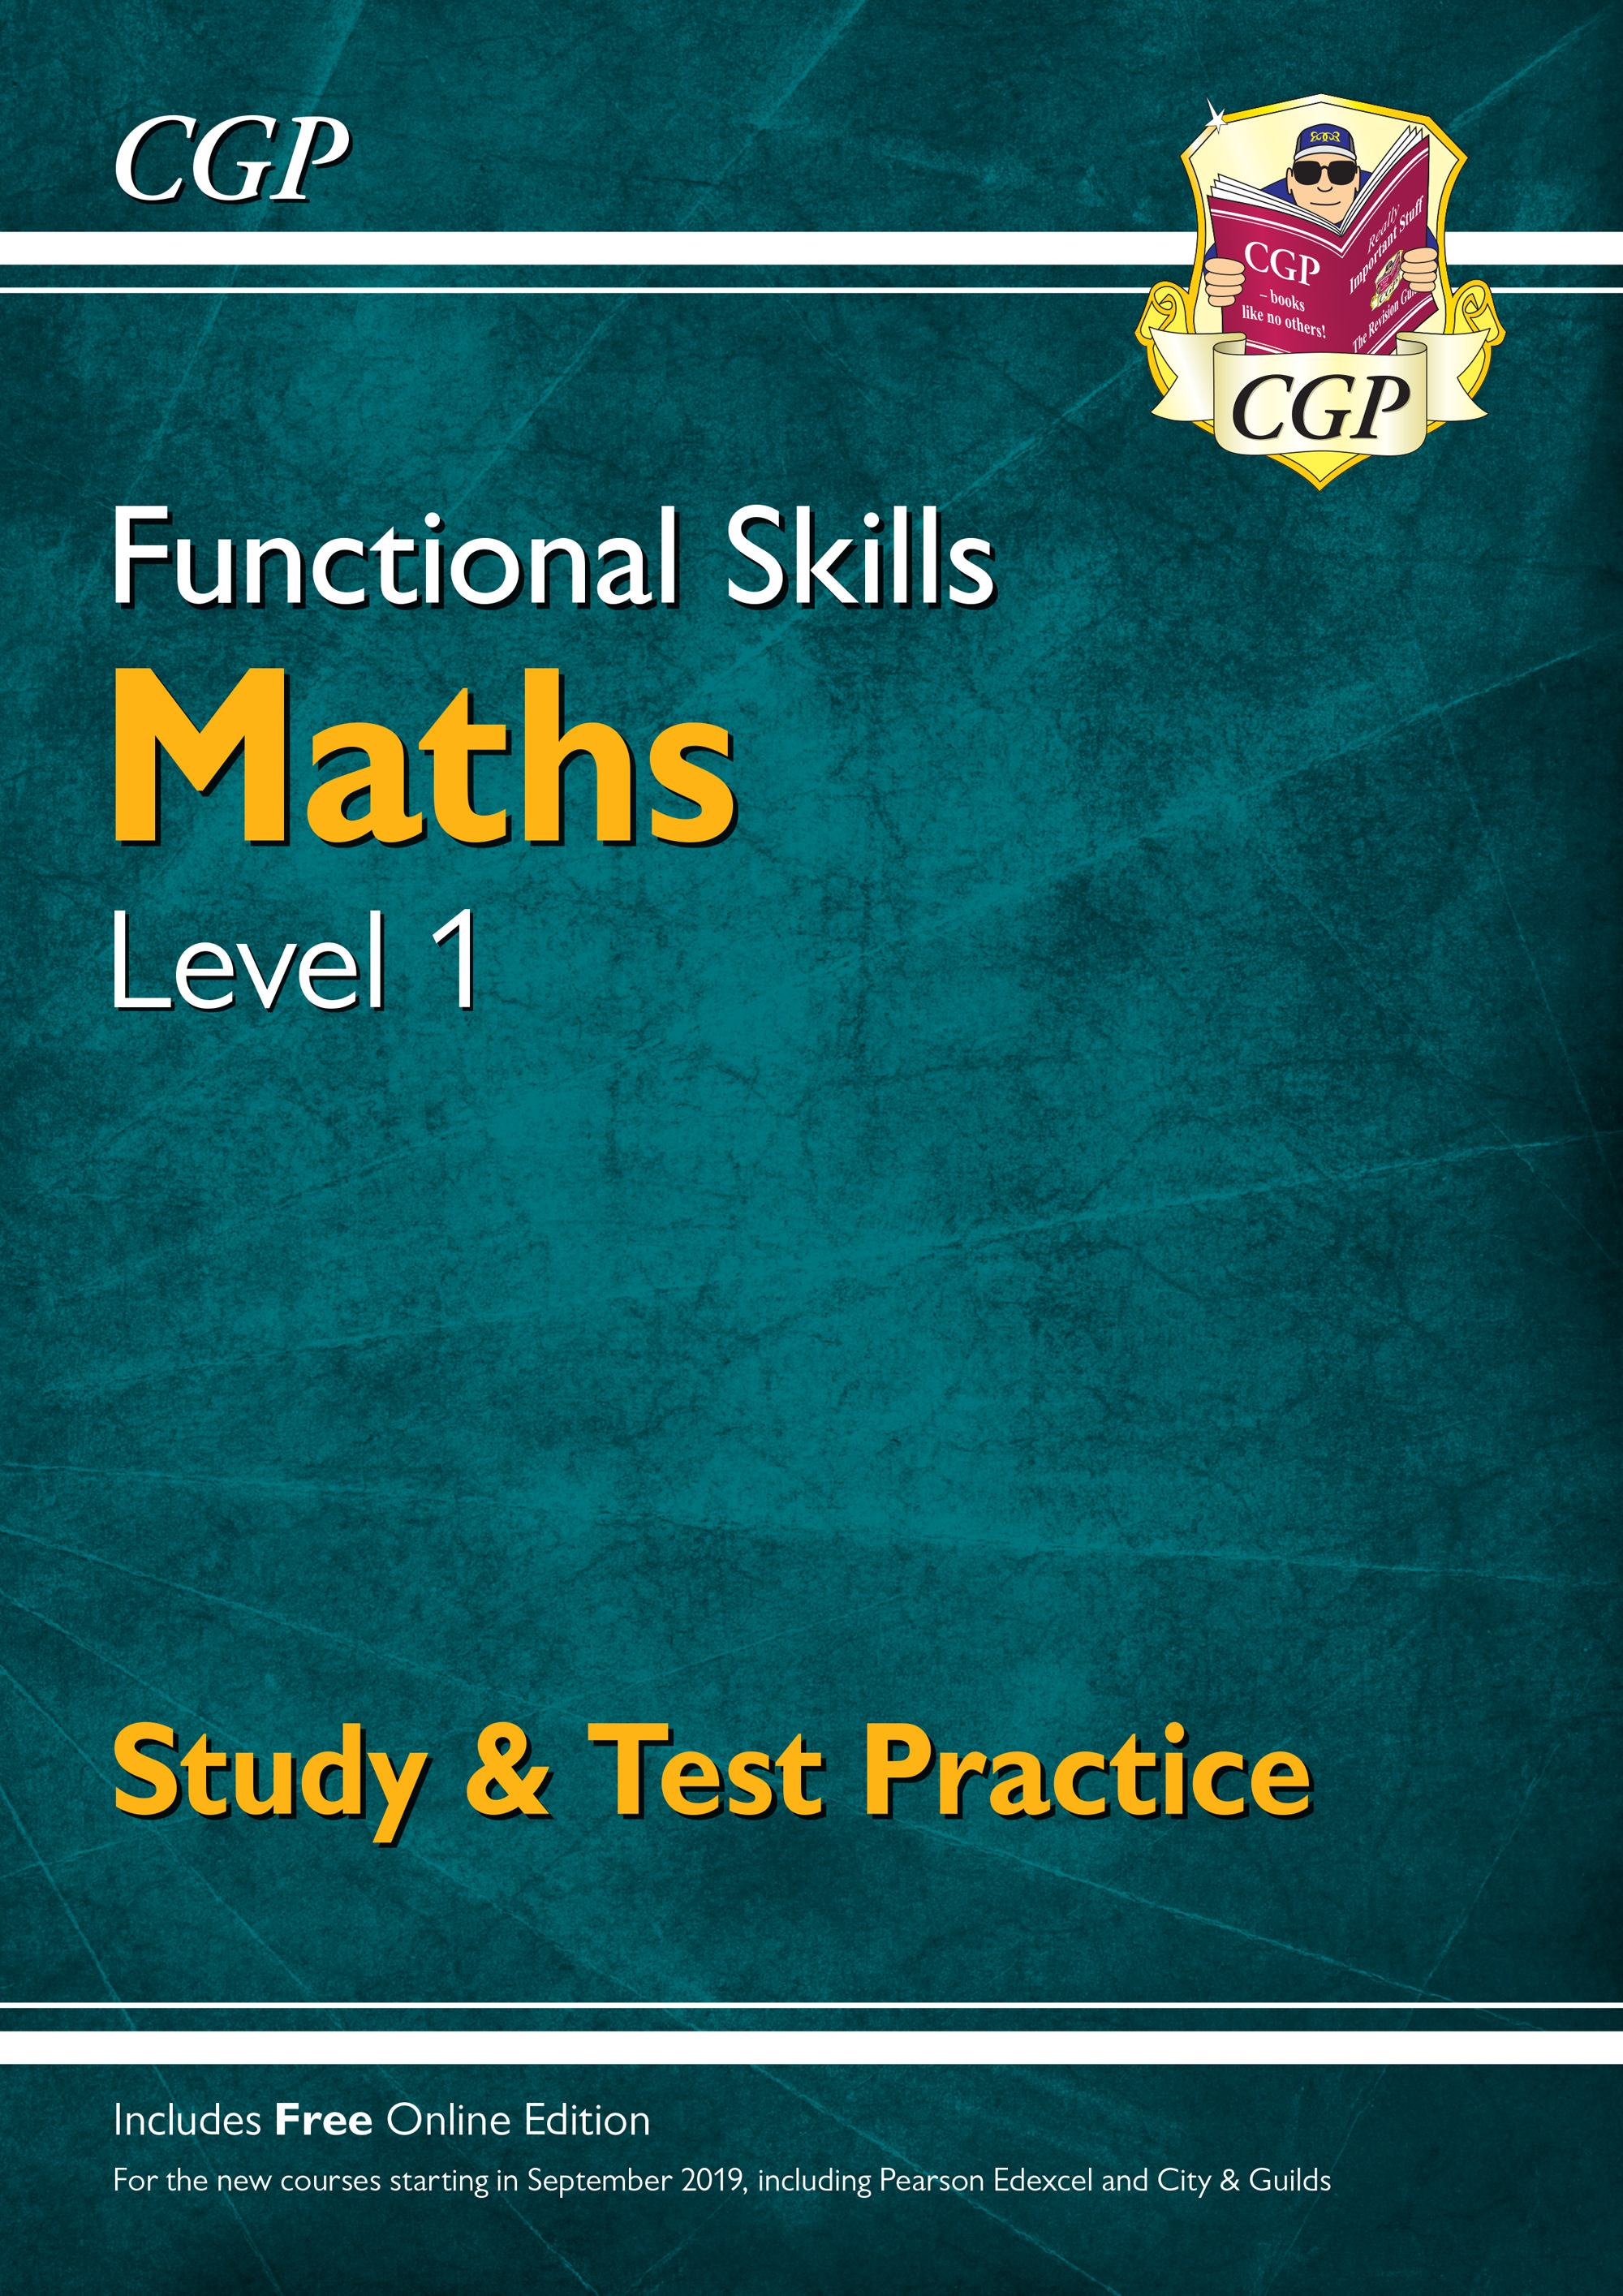 M1SRA3 - New Functional Skills Maths Level 1 - Study & Test Practice (for 2020 & beyond)